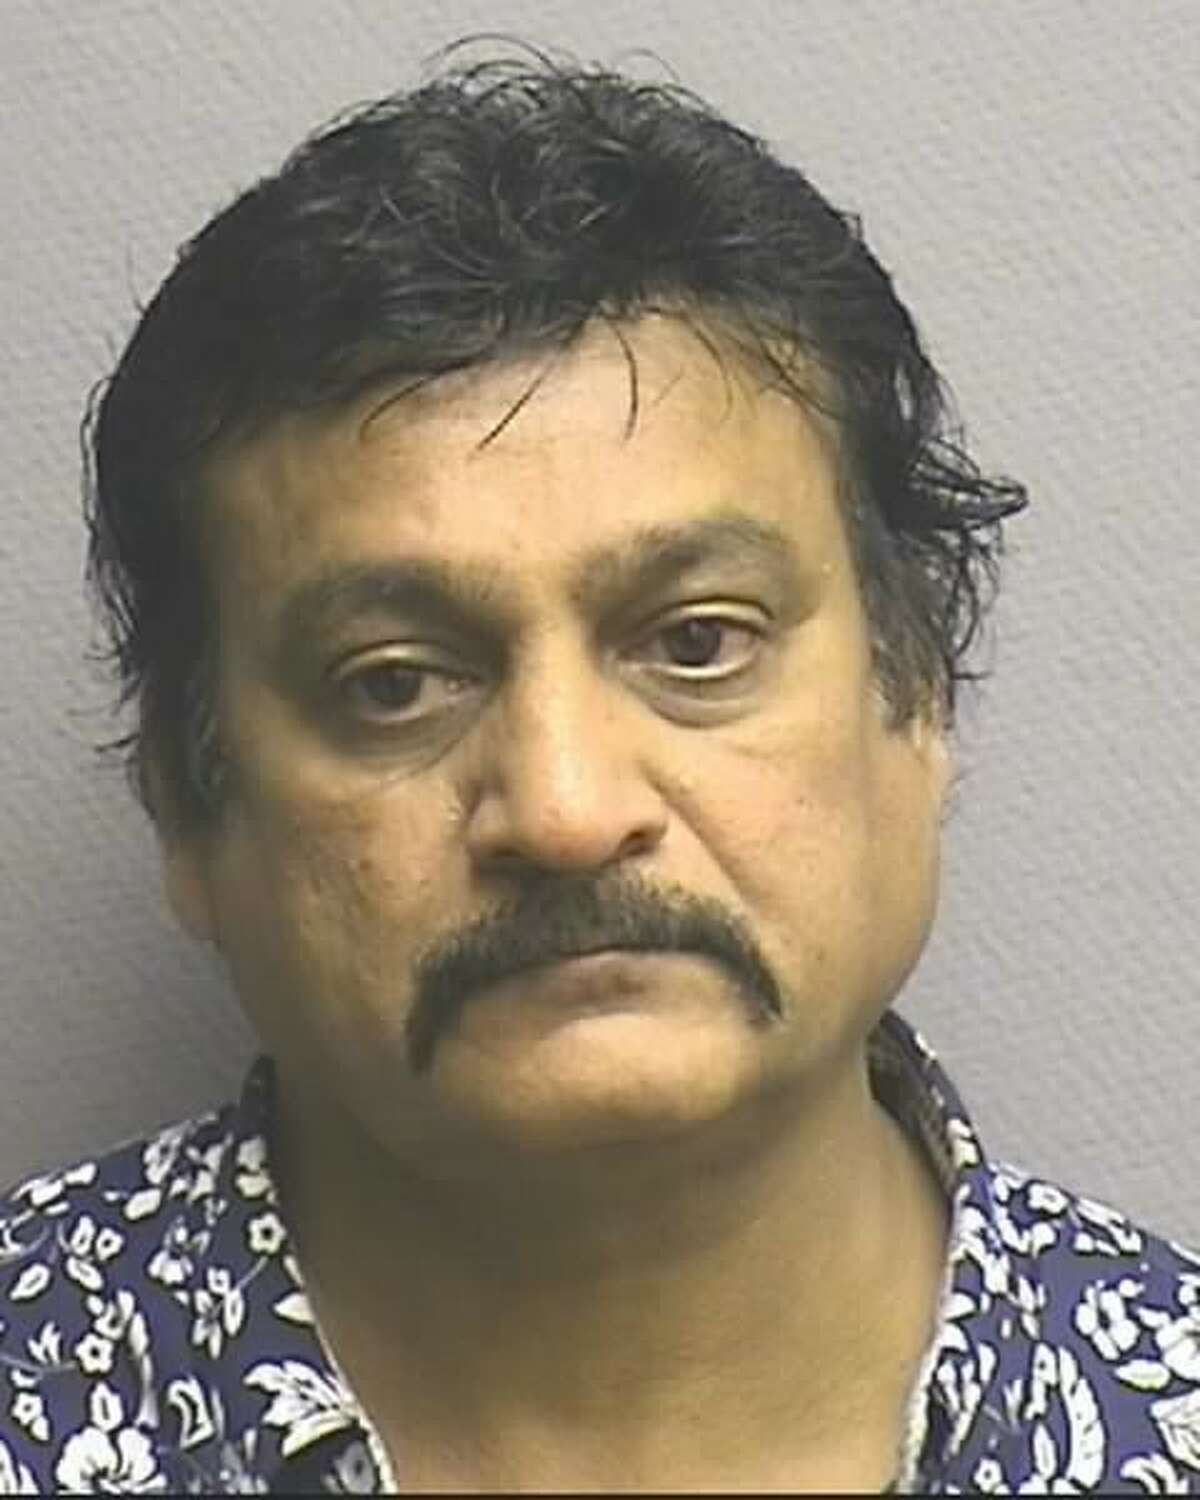 Naushaud Ramzan-Ali Pradhan, 58, was arrested in connection with an investigation into the distribution of synthetic cannabinoids, or Kush, in Houston. The arrest was announced Monday, Sept. 19, 2016.